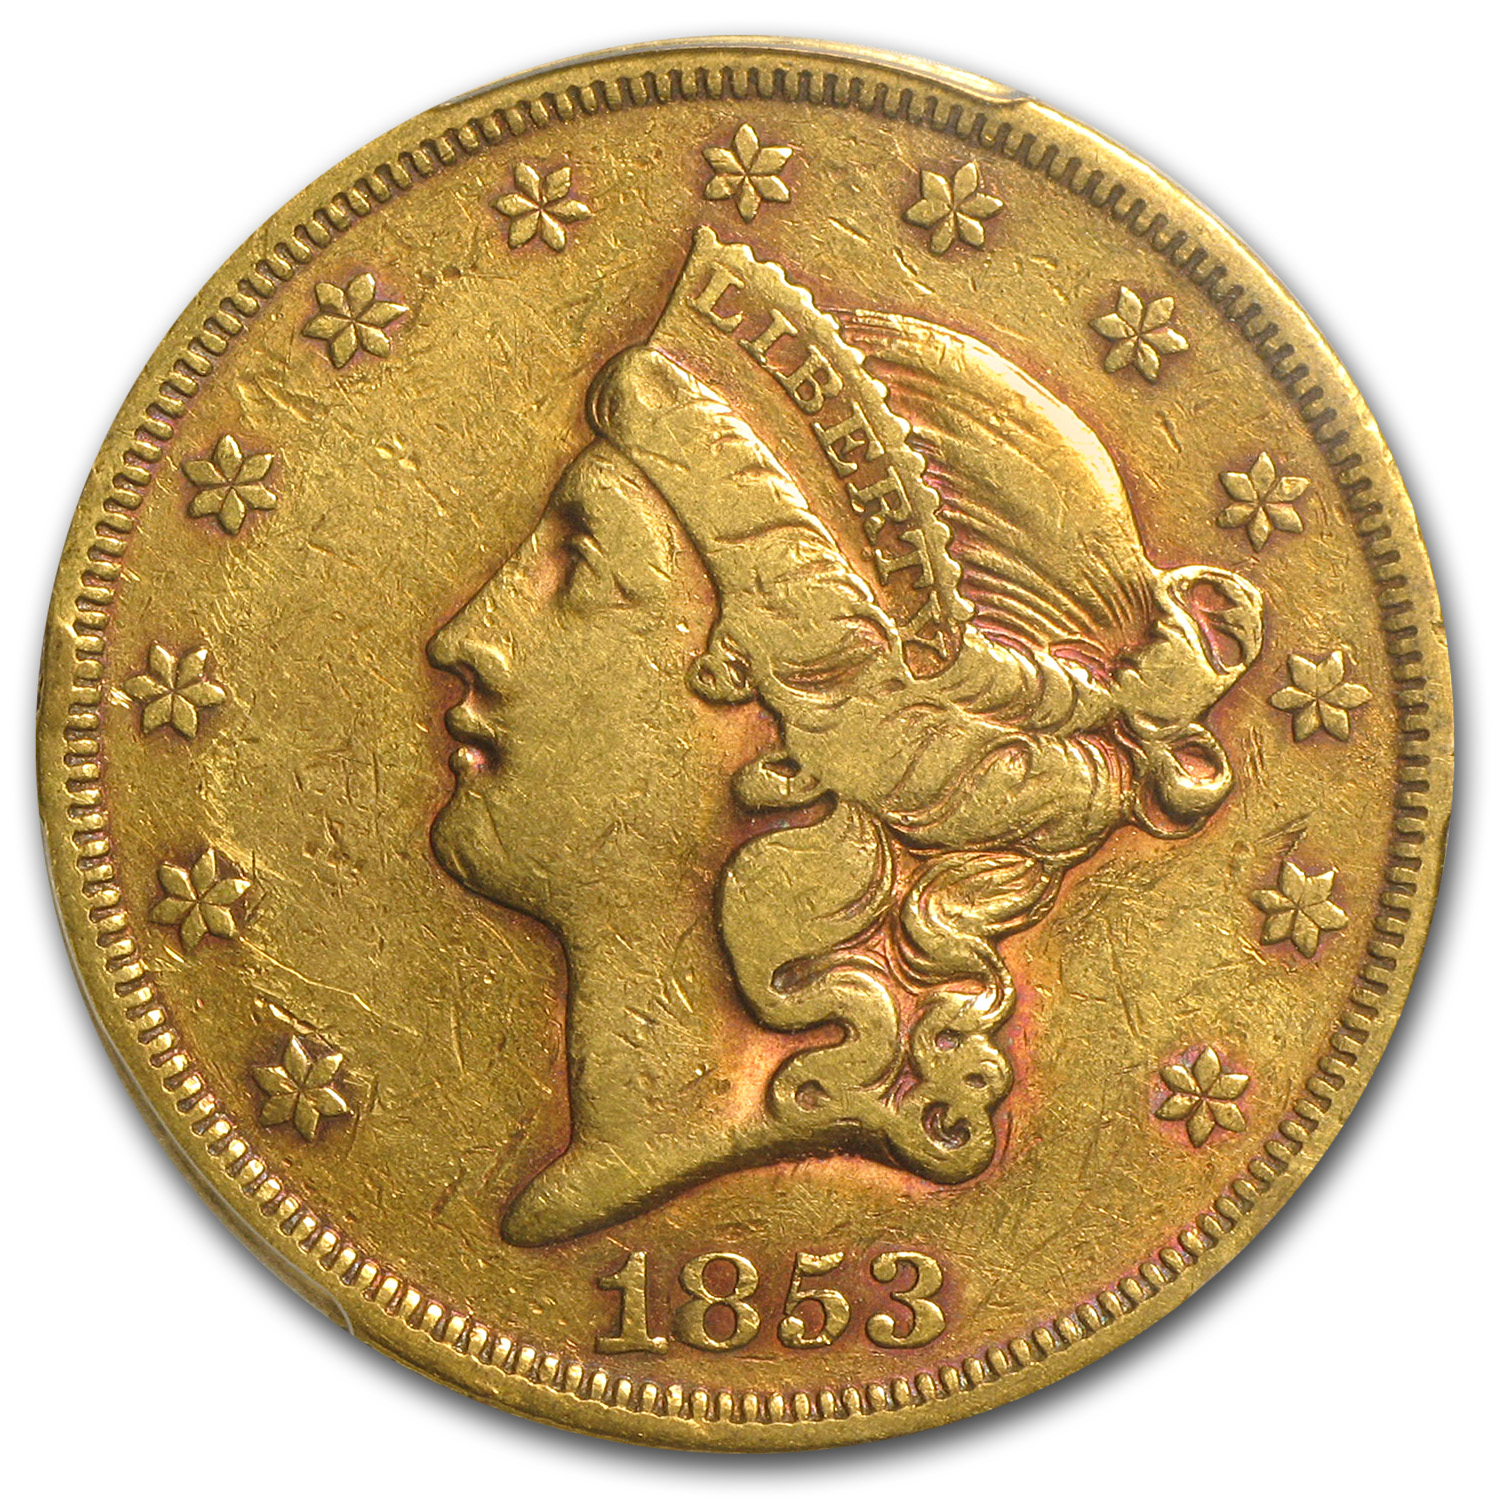 1853 $20 Gold Liberty Double Eagle - VF-35 PCGS